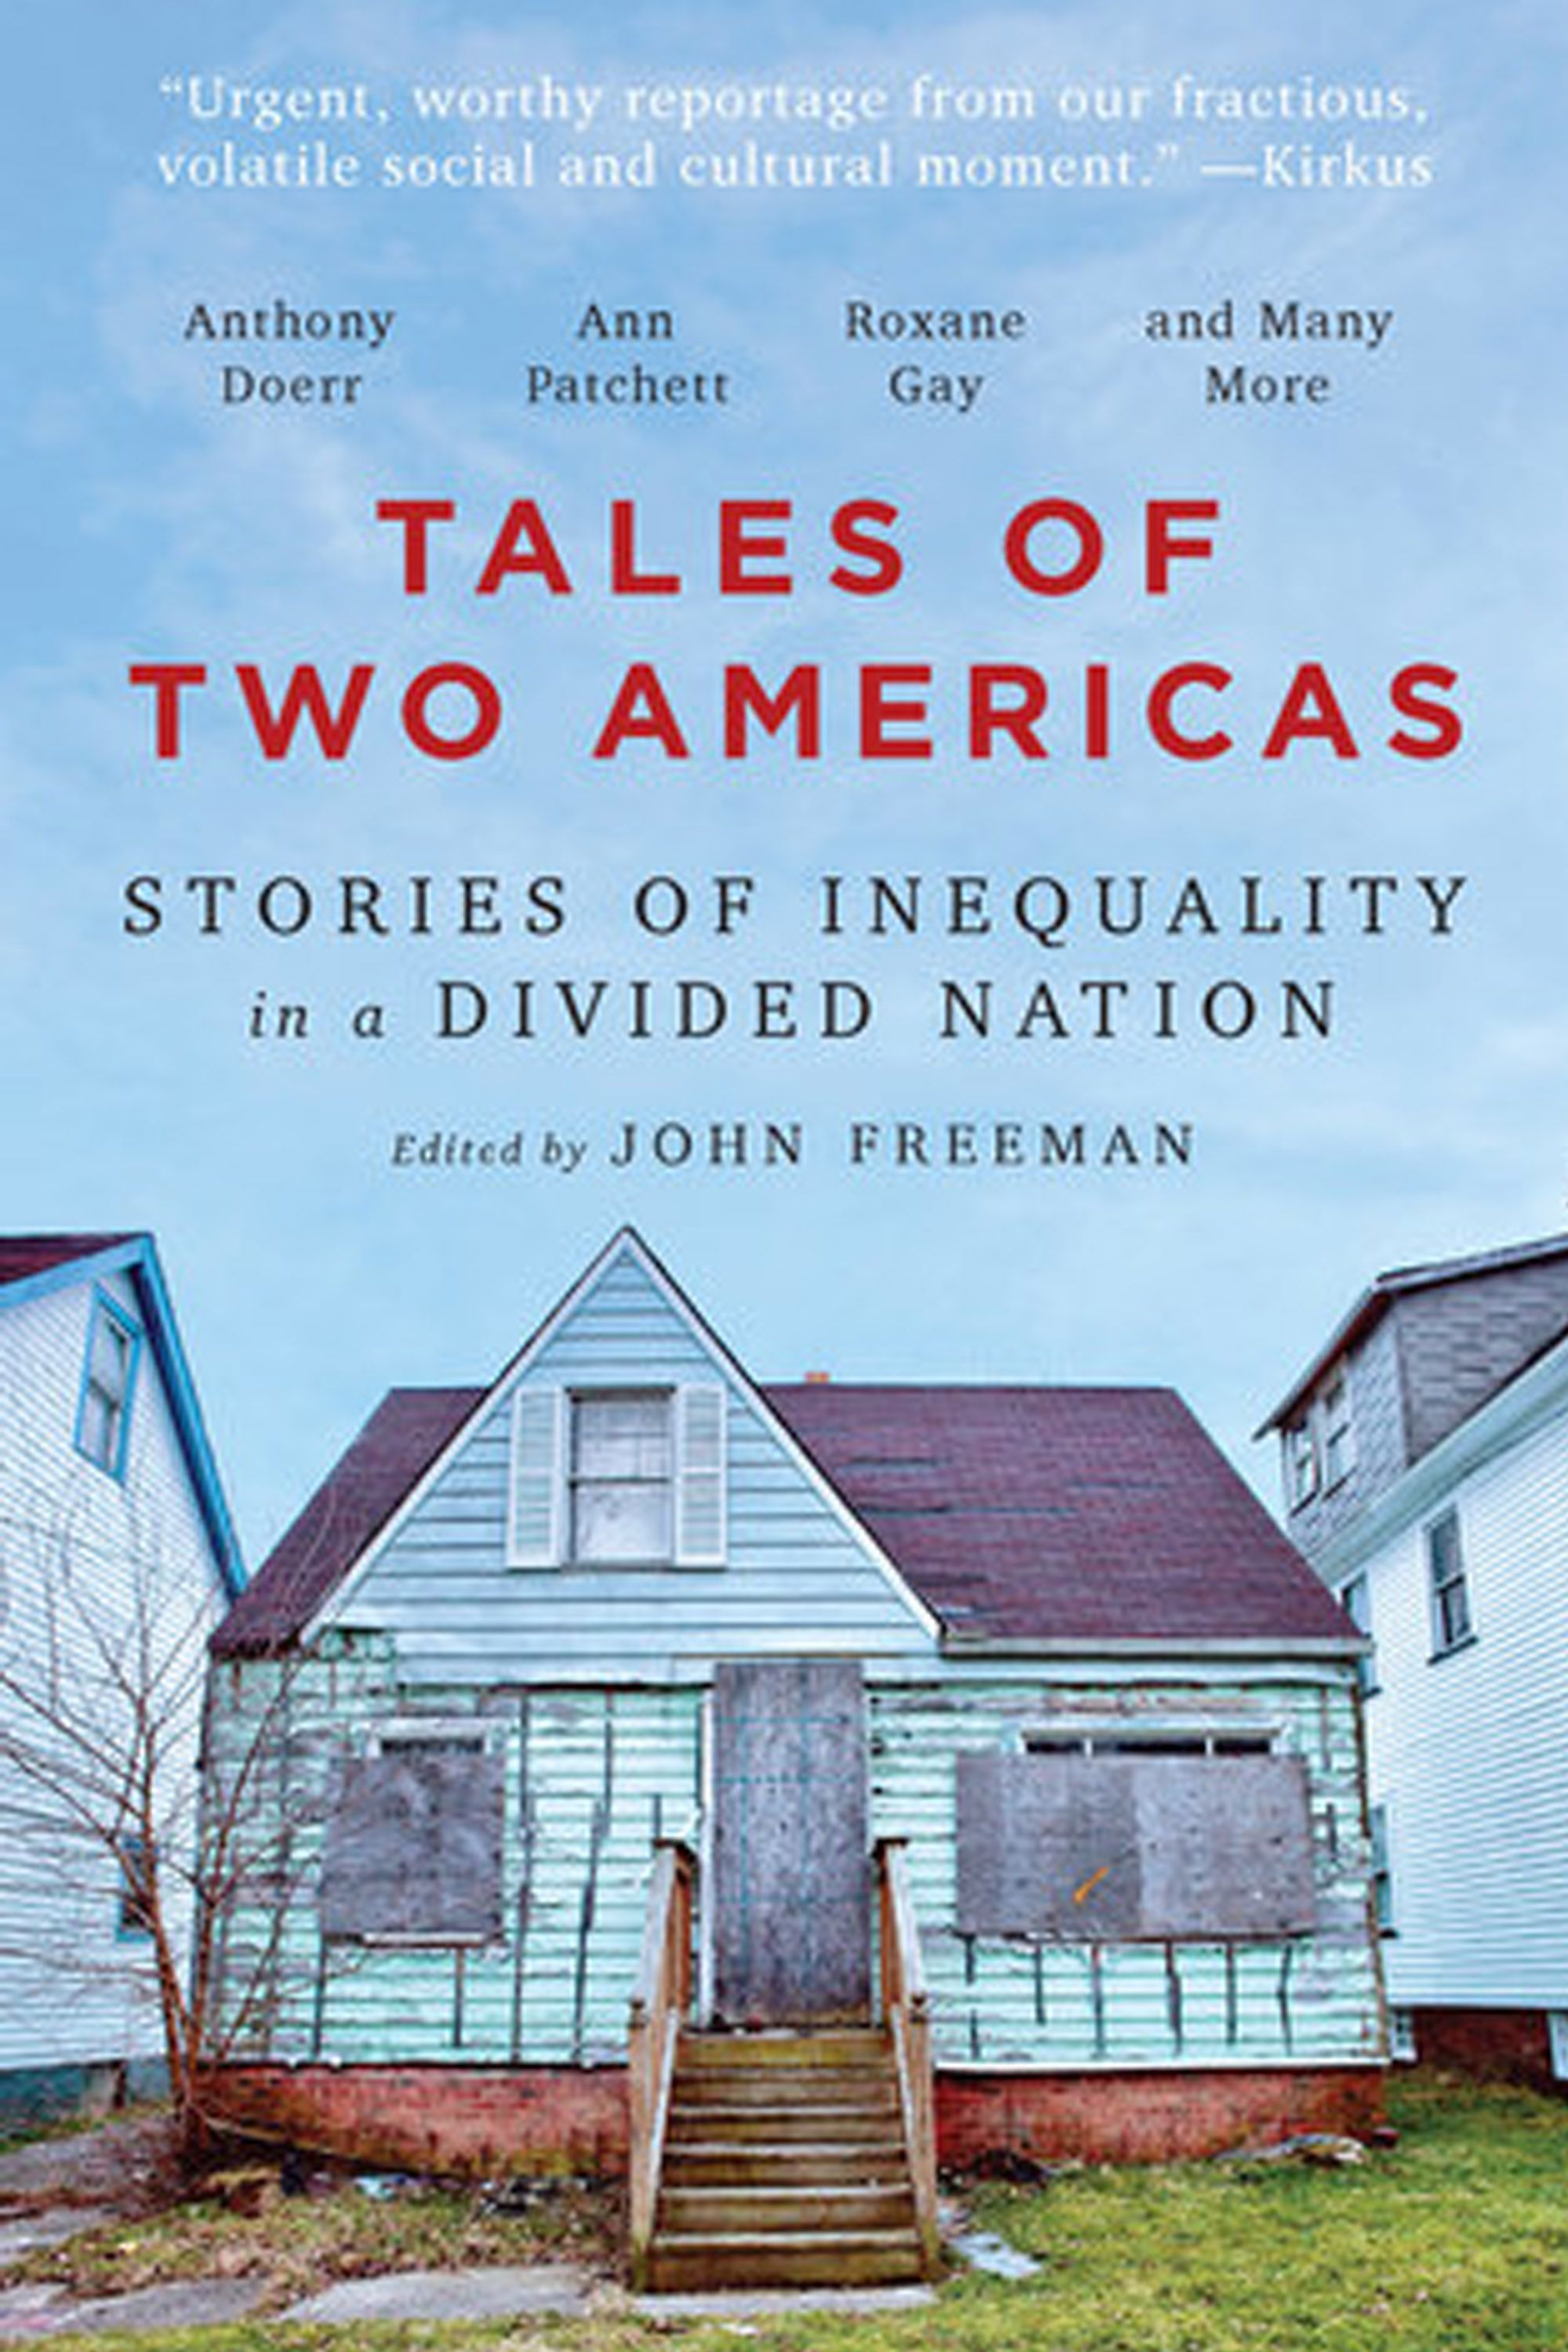 "<p>One of the central lessons of the 2016 election and its aftermath was that America is divided: in its beliefs, in its media, and in its experiences. Writers including <a href=""http://www.elle.com/culture/a45920/roxane-gay-profile-hunger-memoir/"" data-tracking-id=""recirc-text-link"">Roxane Gay</a>, Edwidge Danticat, Joyce Carol Oates, and more survey our troubled times, telling real stories about the America they live in. (<a href=""https://www.amazon.com/Tales-Two-Americas-Stories-Inequality-ebook/dp/B01NCZ3ITB"" data-tracking-id=""recirc-text-link"">September 5, Penguin Books</a>)</p>"